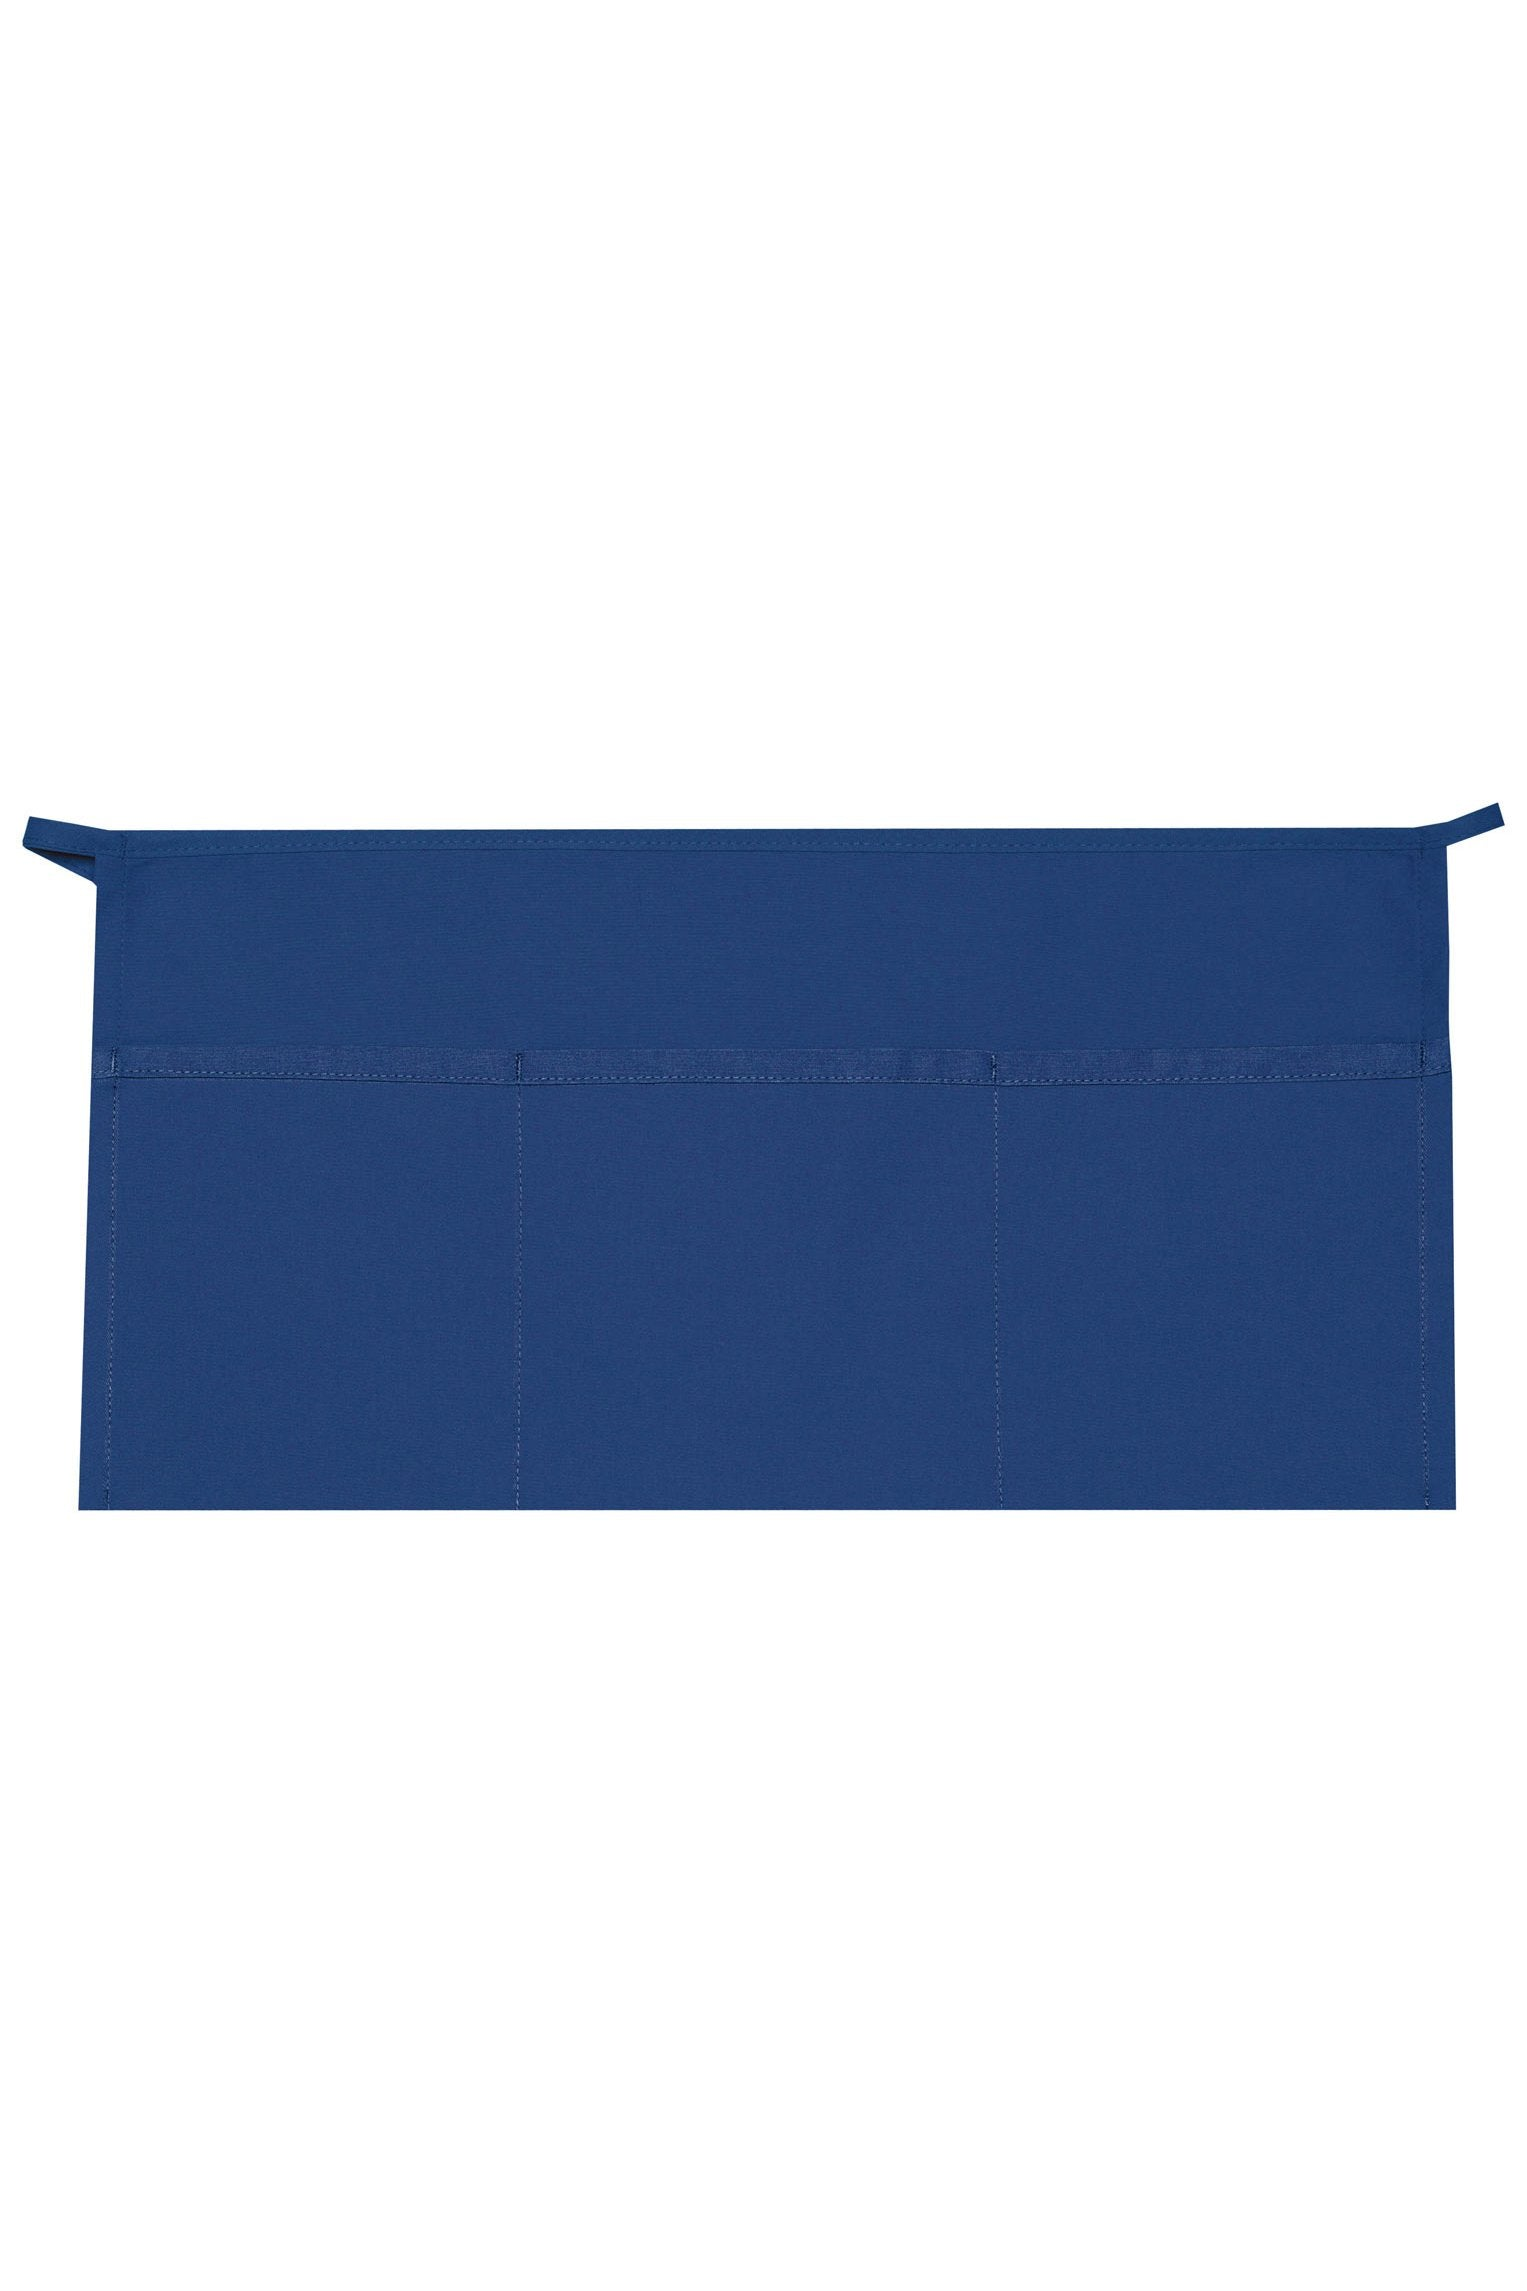 Royal Blue XL Waist Apron (3 Pockets)